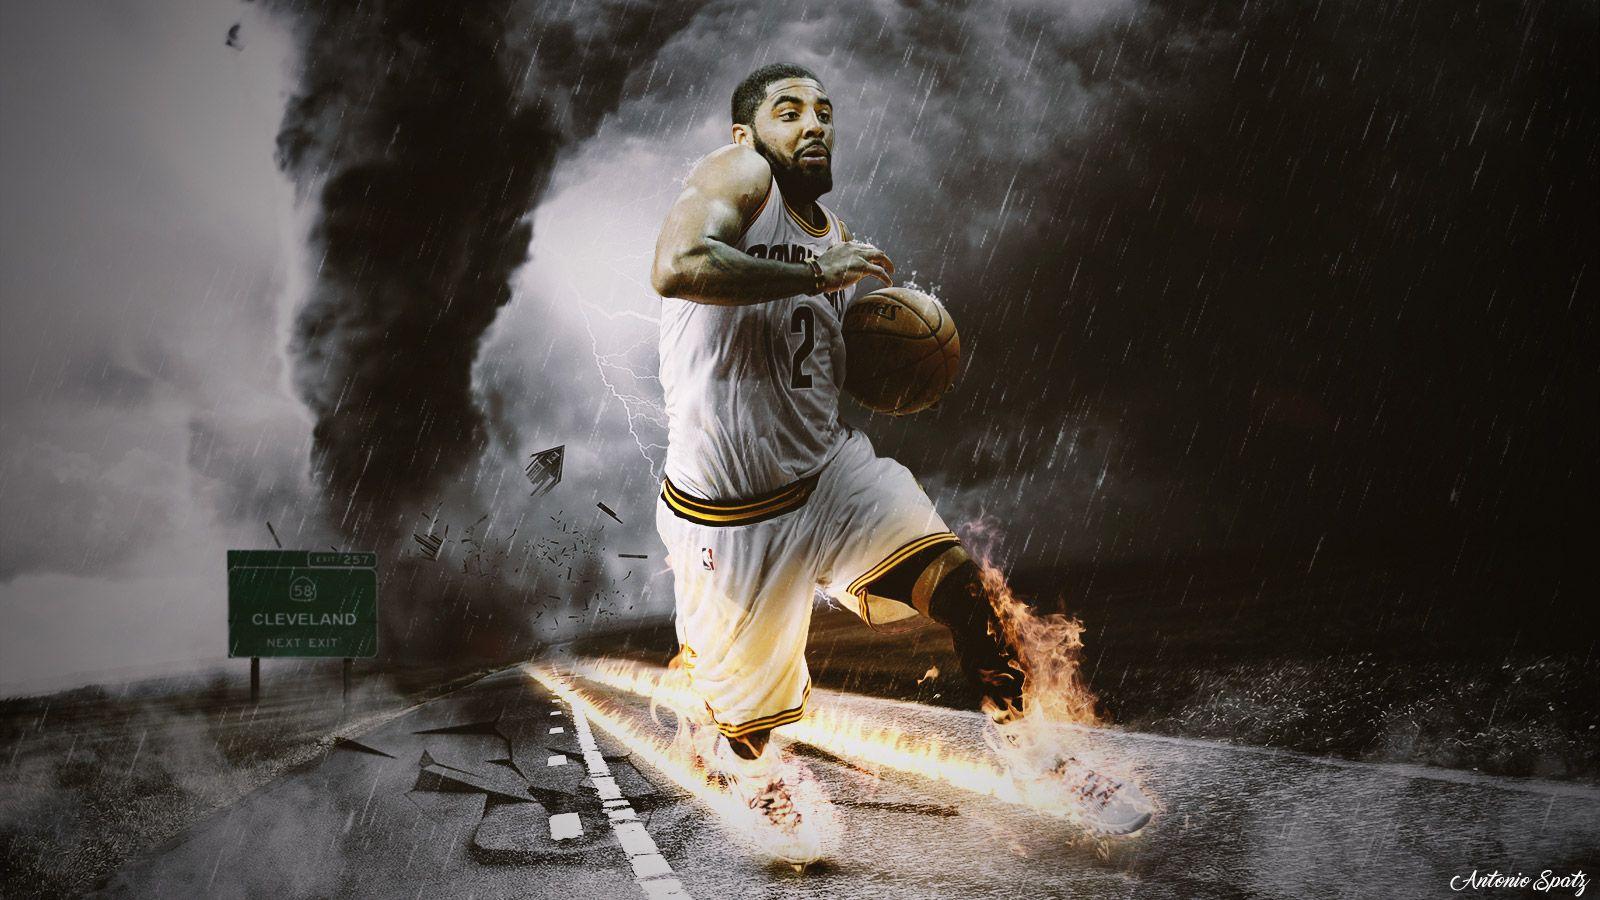 Kyrie Irving Wallpapers | Basketball Wallpapers at